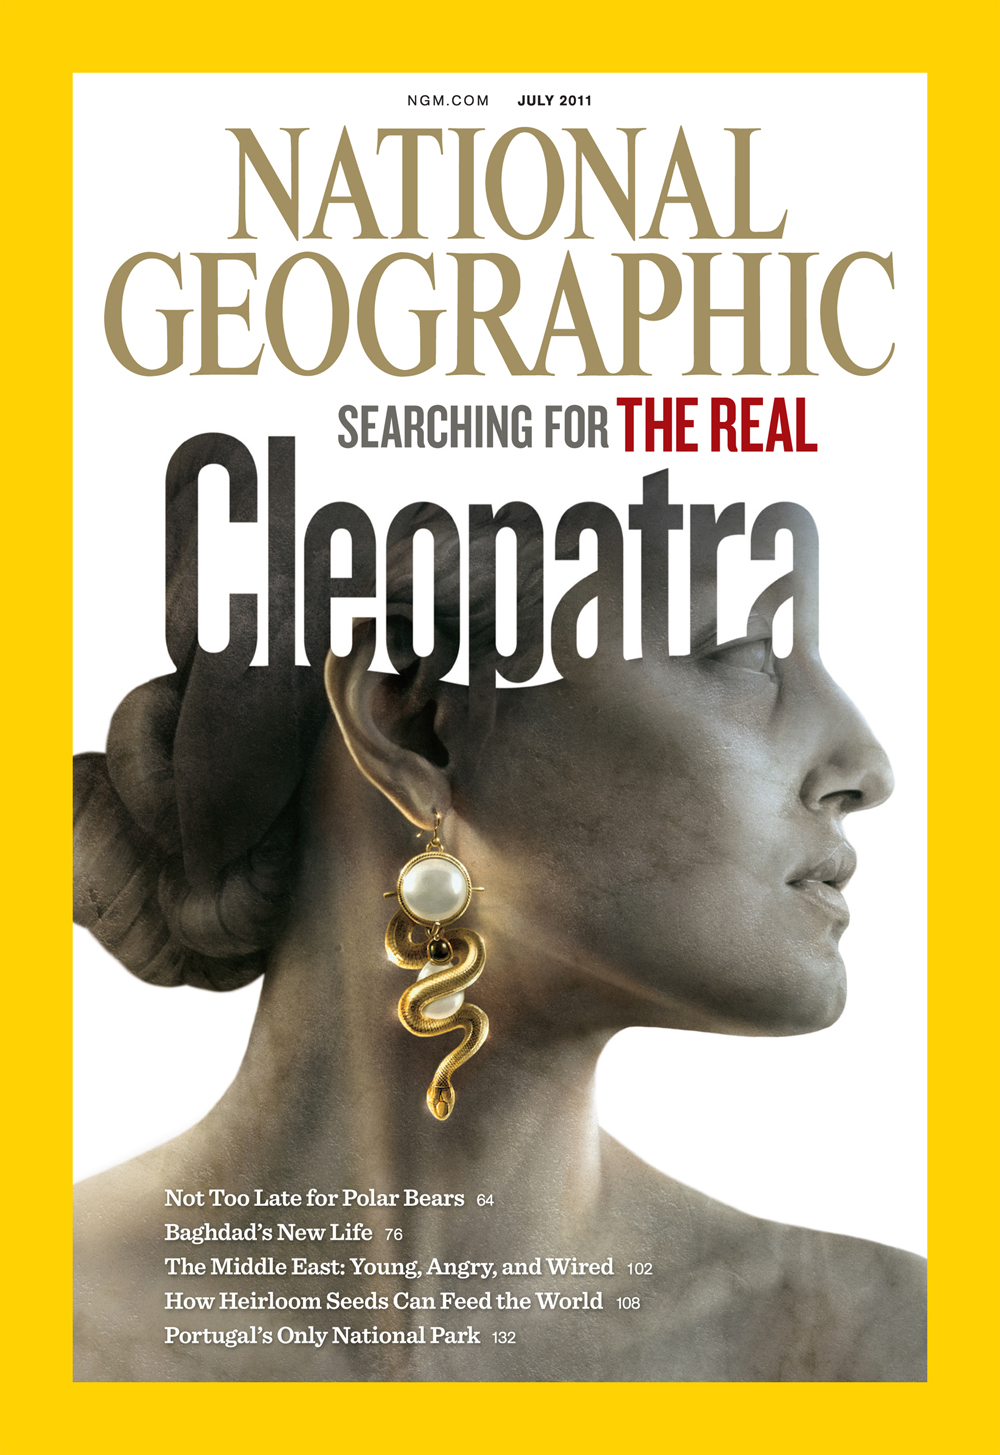 THE JULY 2011 ISSUE OF NATIONAL GEOGRAPHIC